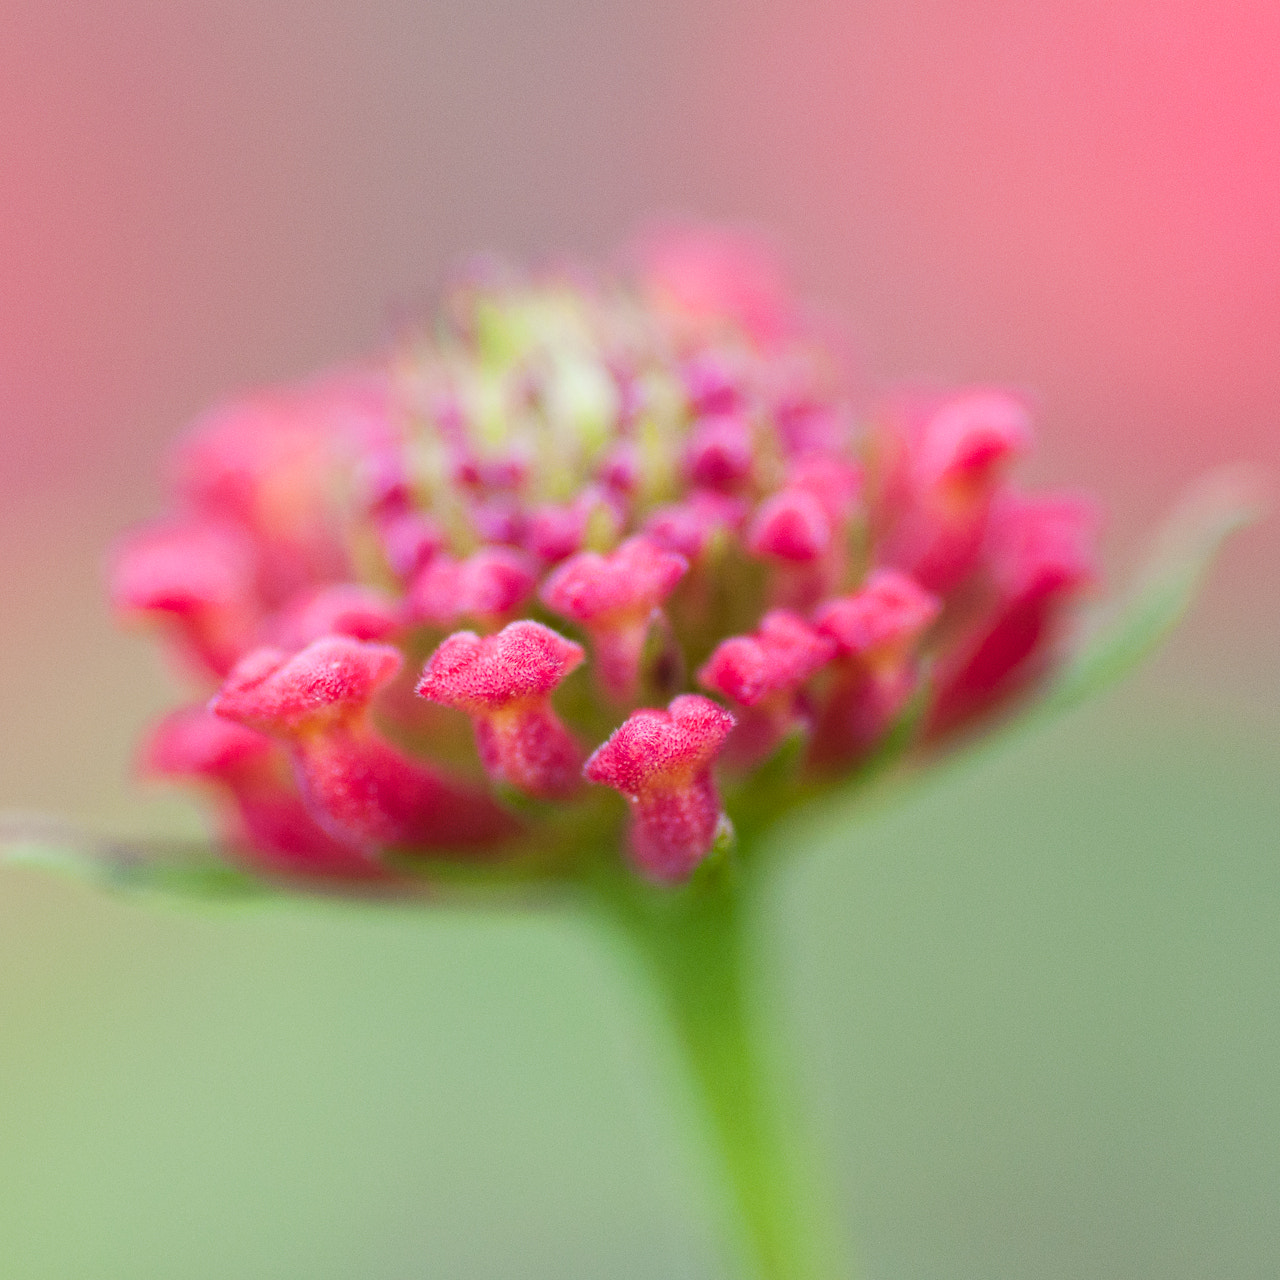 Photograph flower by LiangJin Lim on 500px